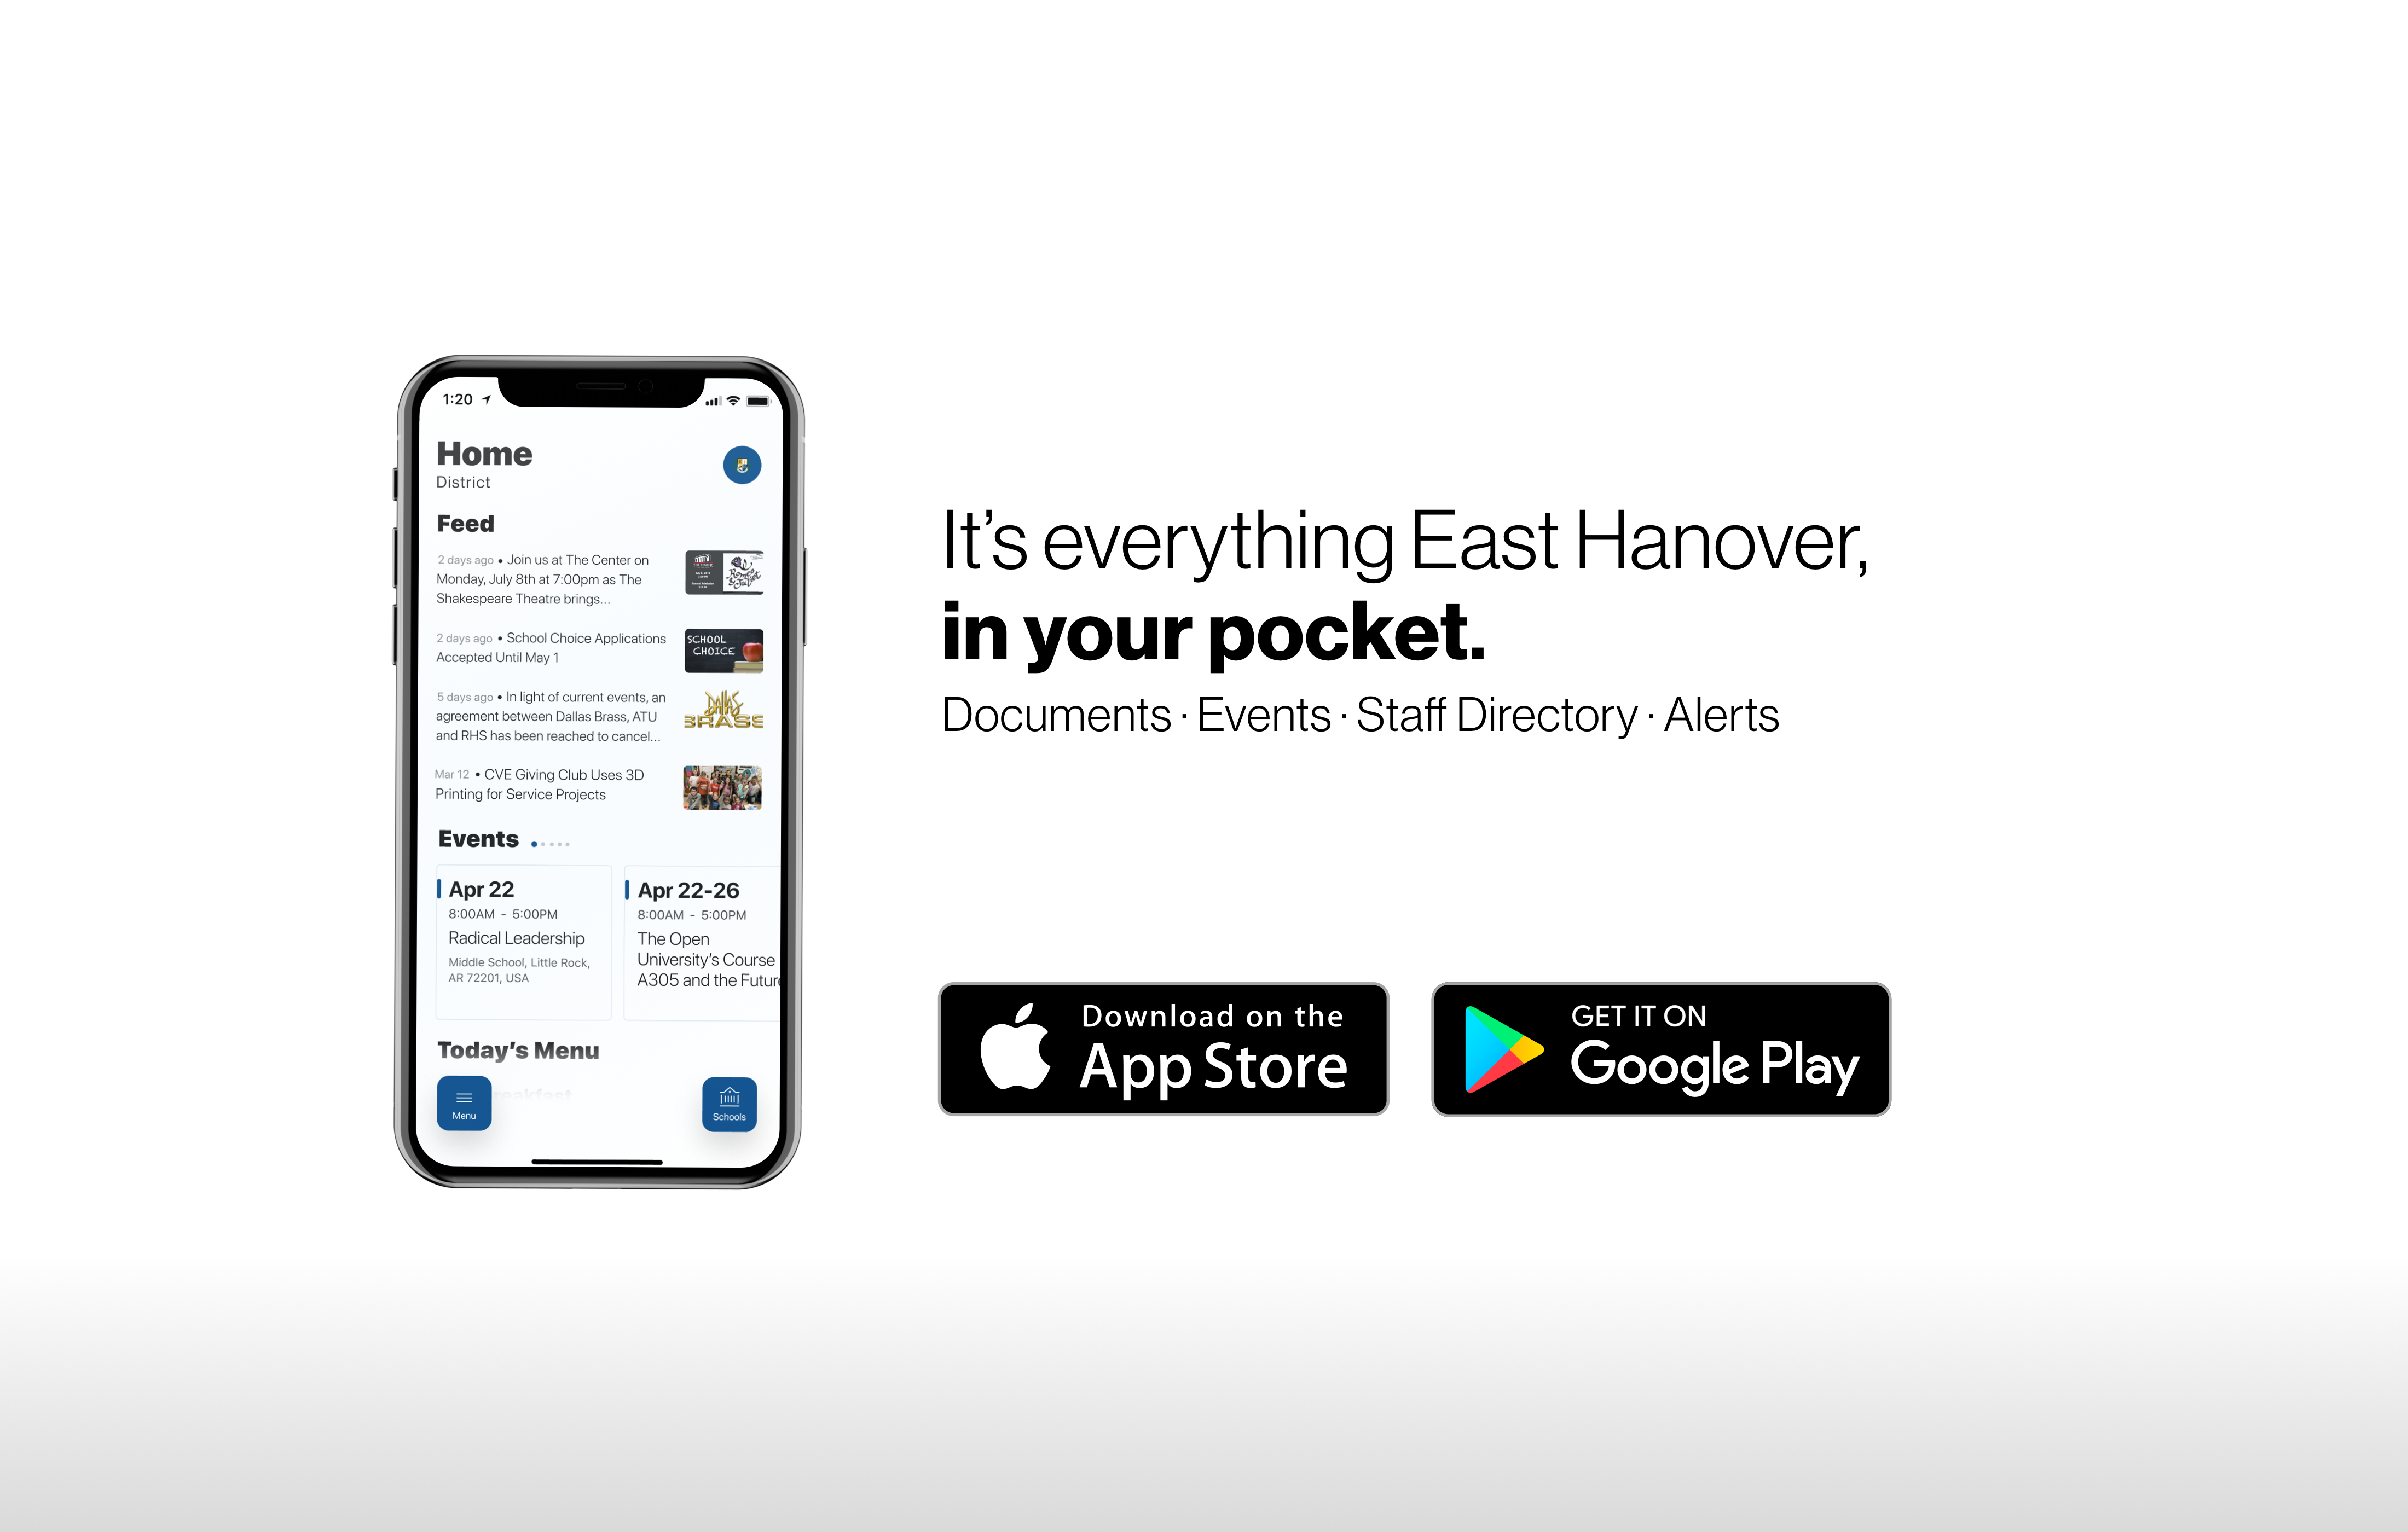 Everything East Hanover in Your Pocket